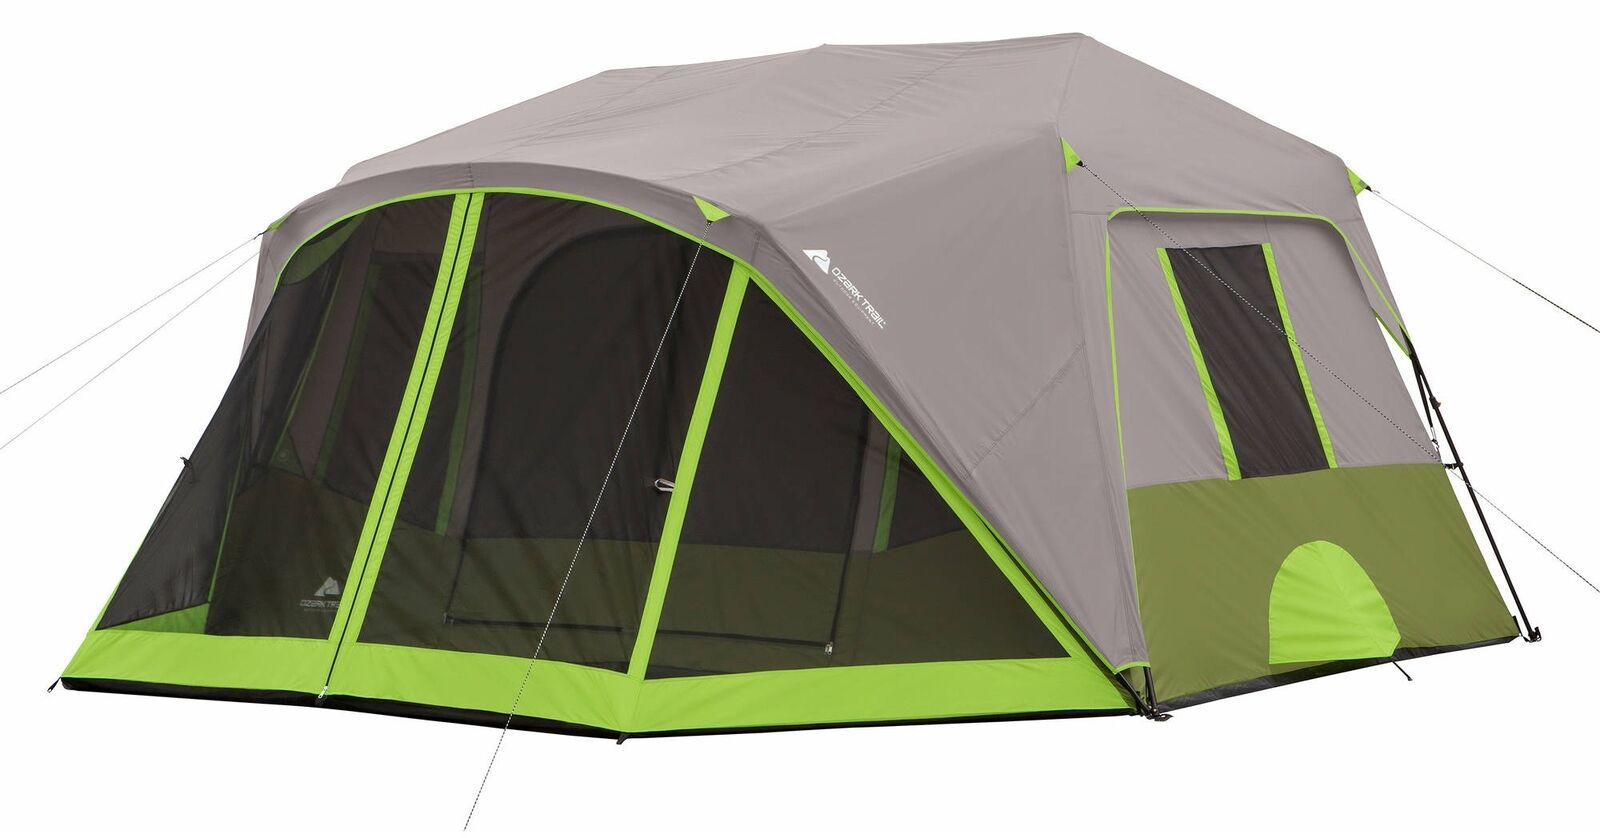 Ozark Trail All Season Instant Cabin Tent 9 Person 2 Room Screen Outdoor Camping